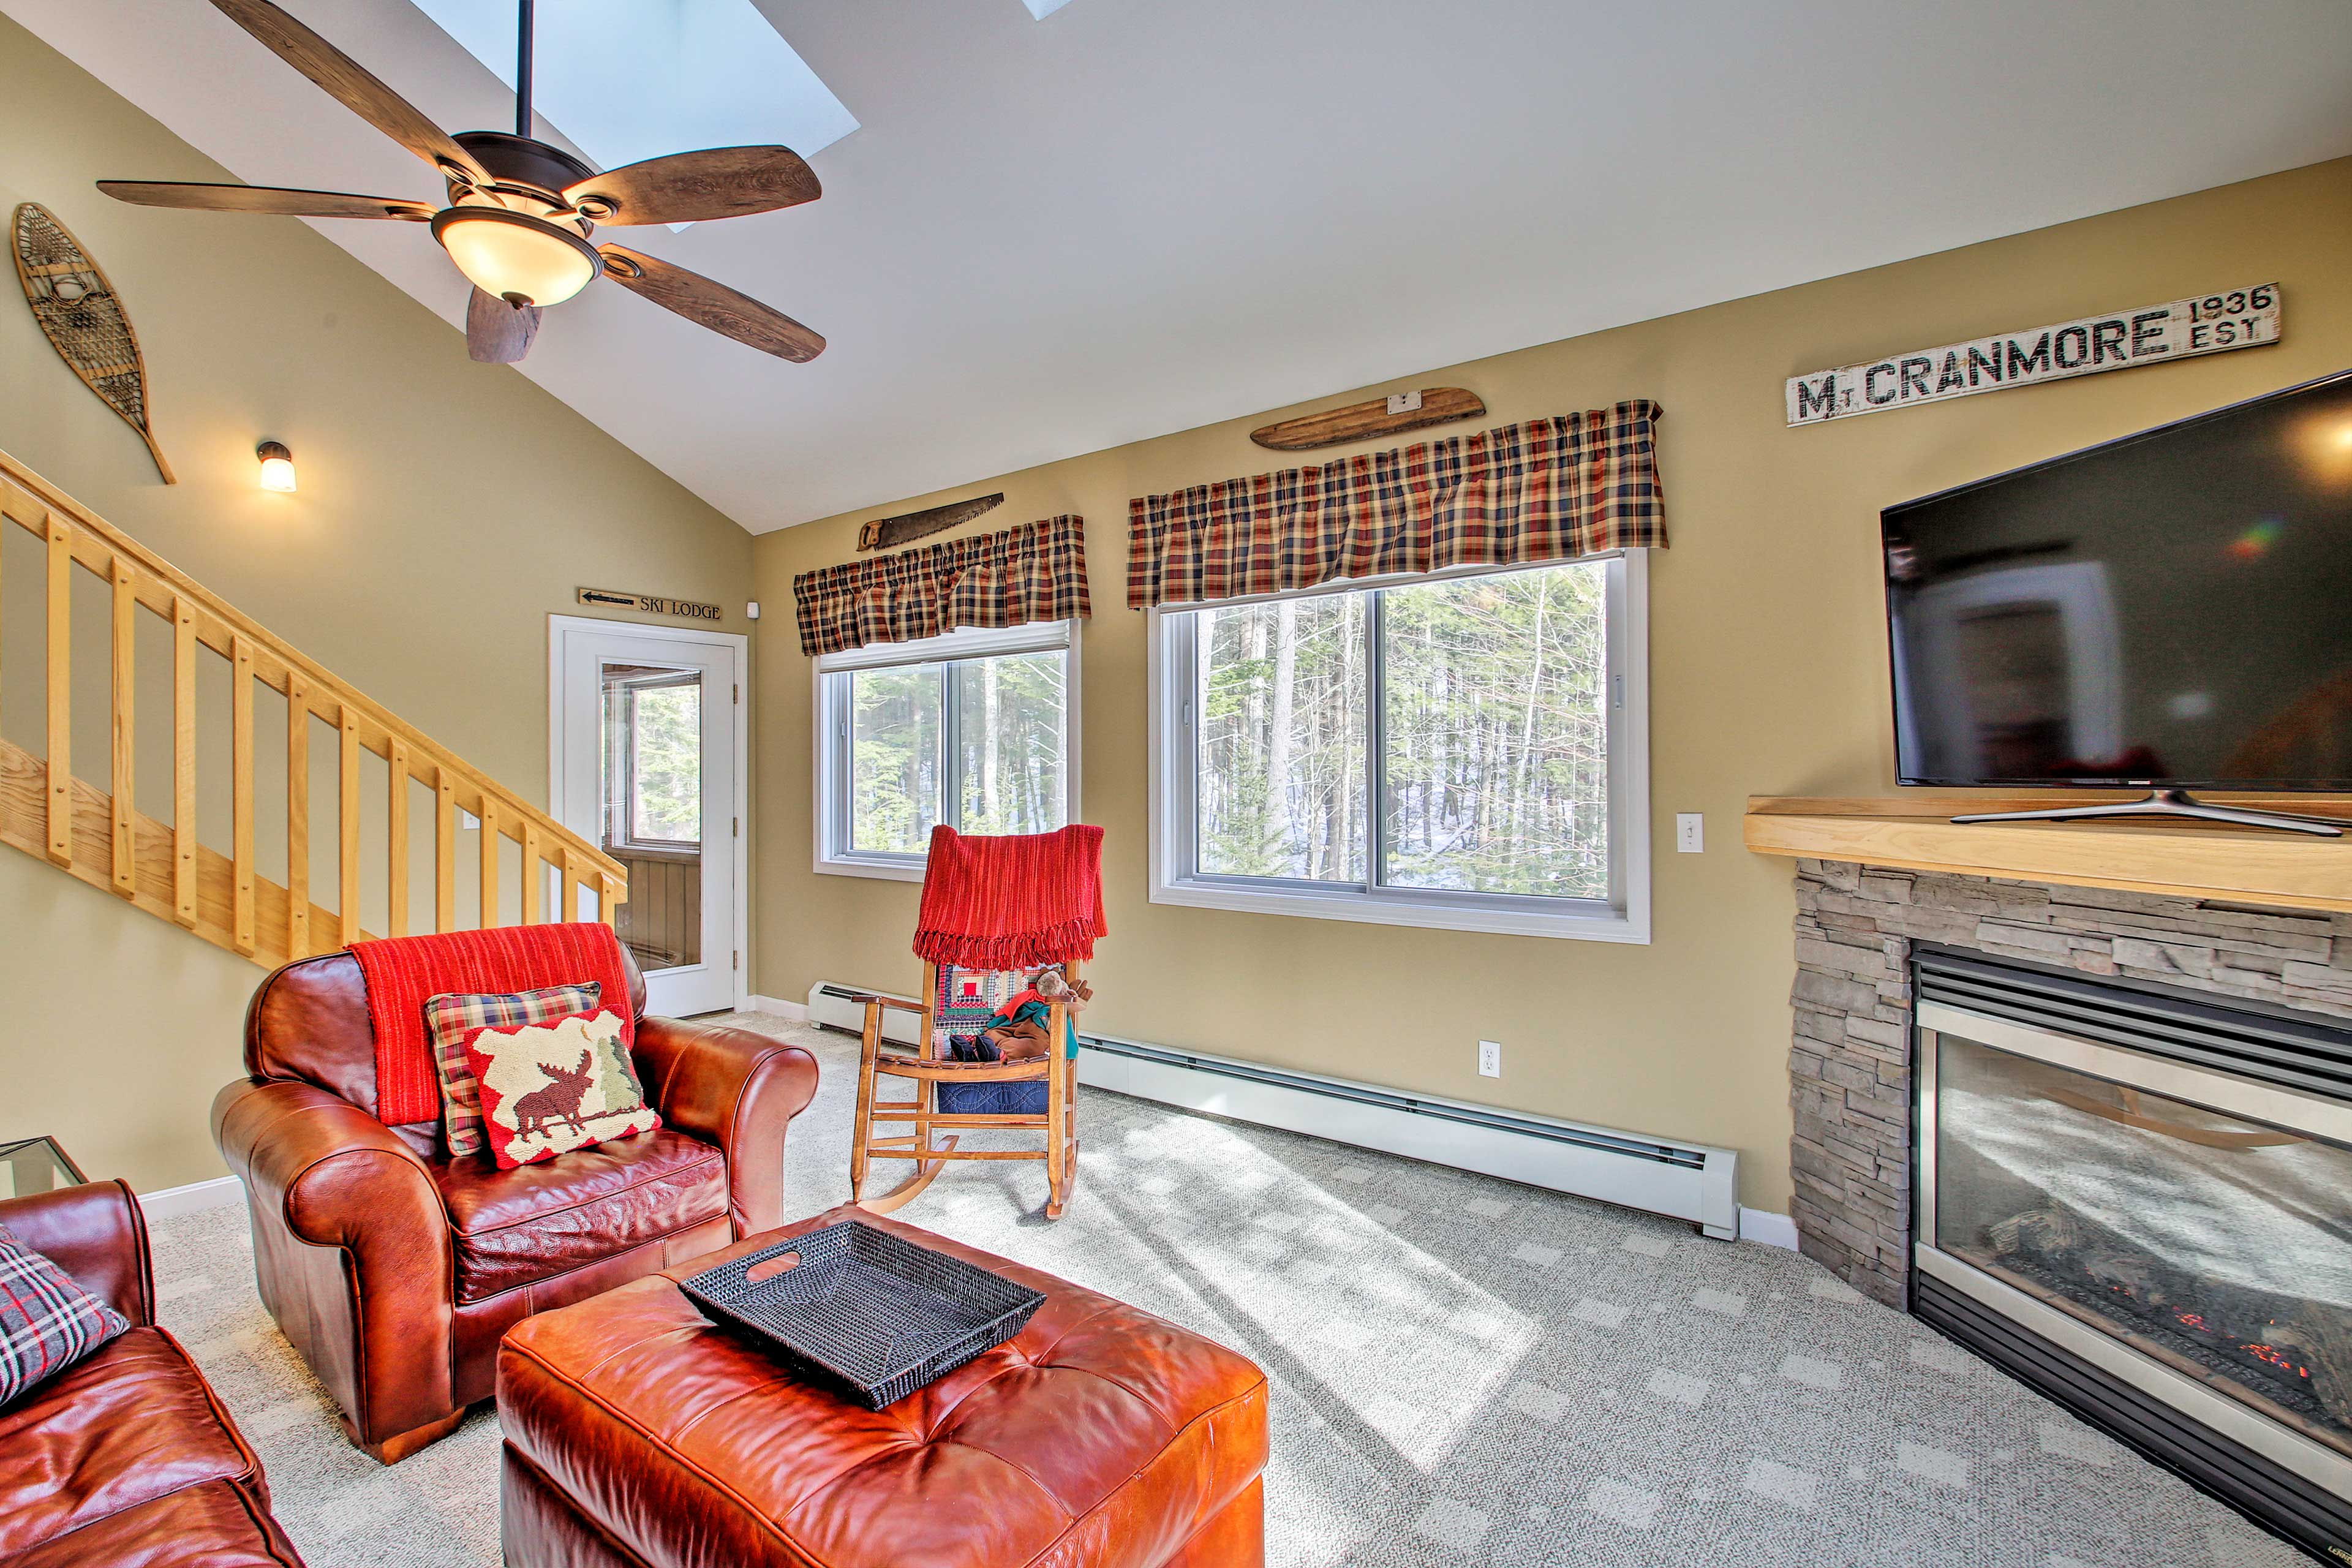 Mt Cranmore is less than 1 mile from the vacation rental's doors.